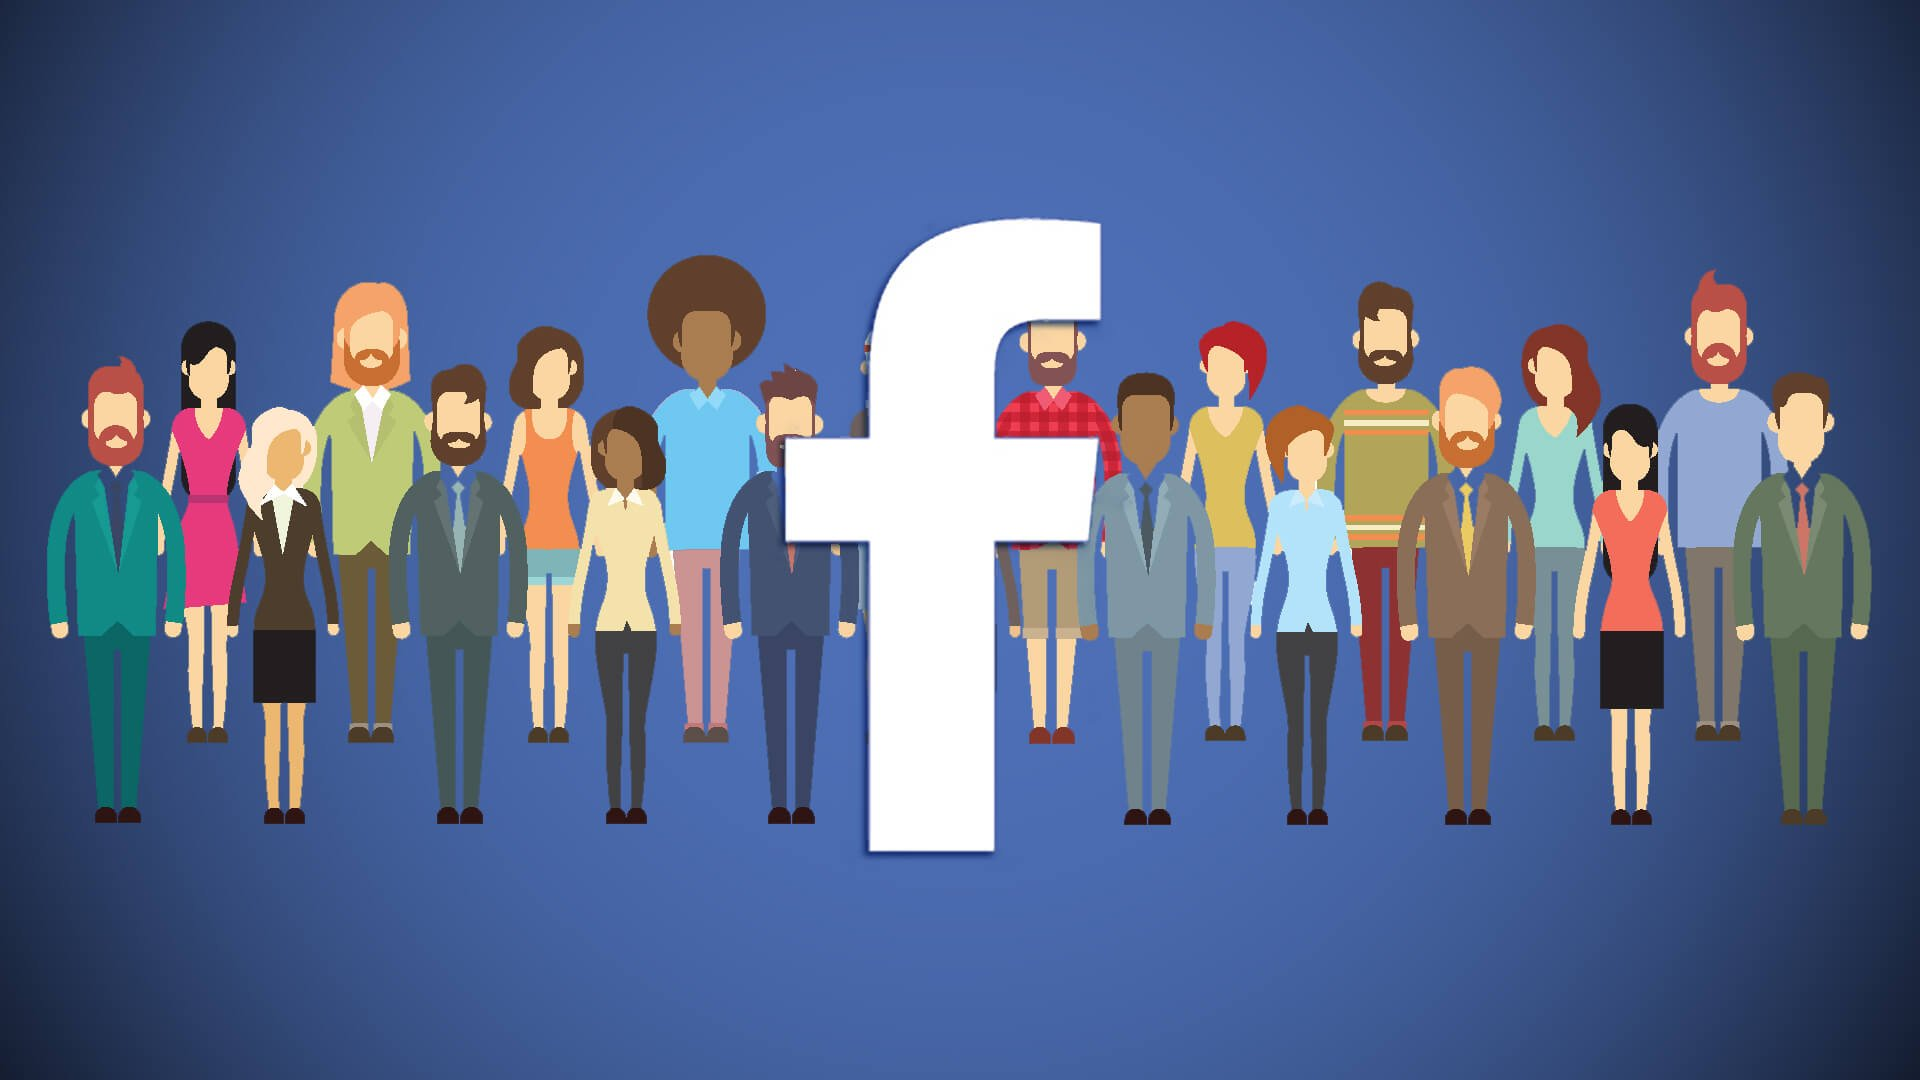 Illustration of Facebook icon with people.